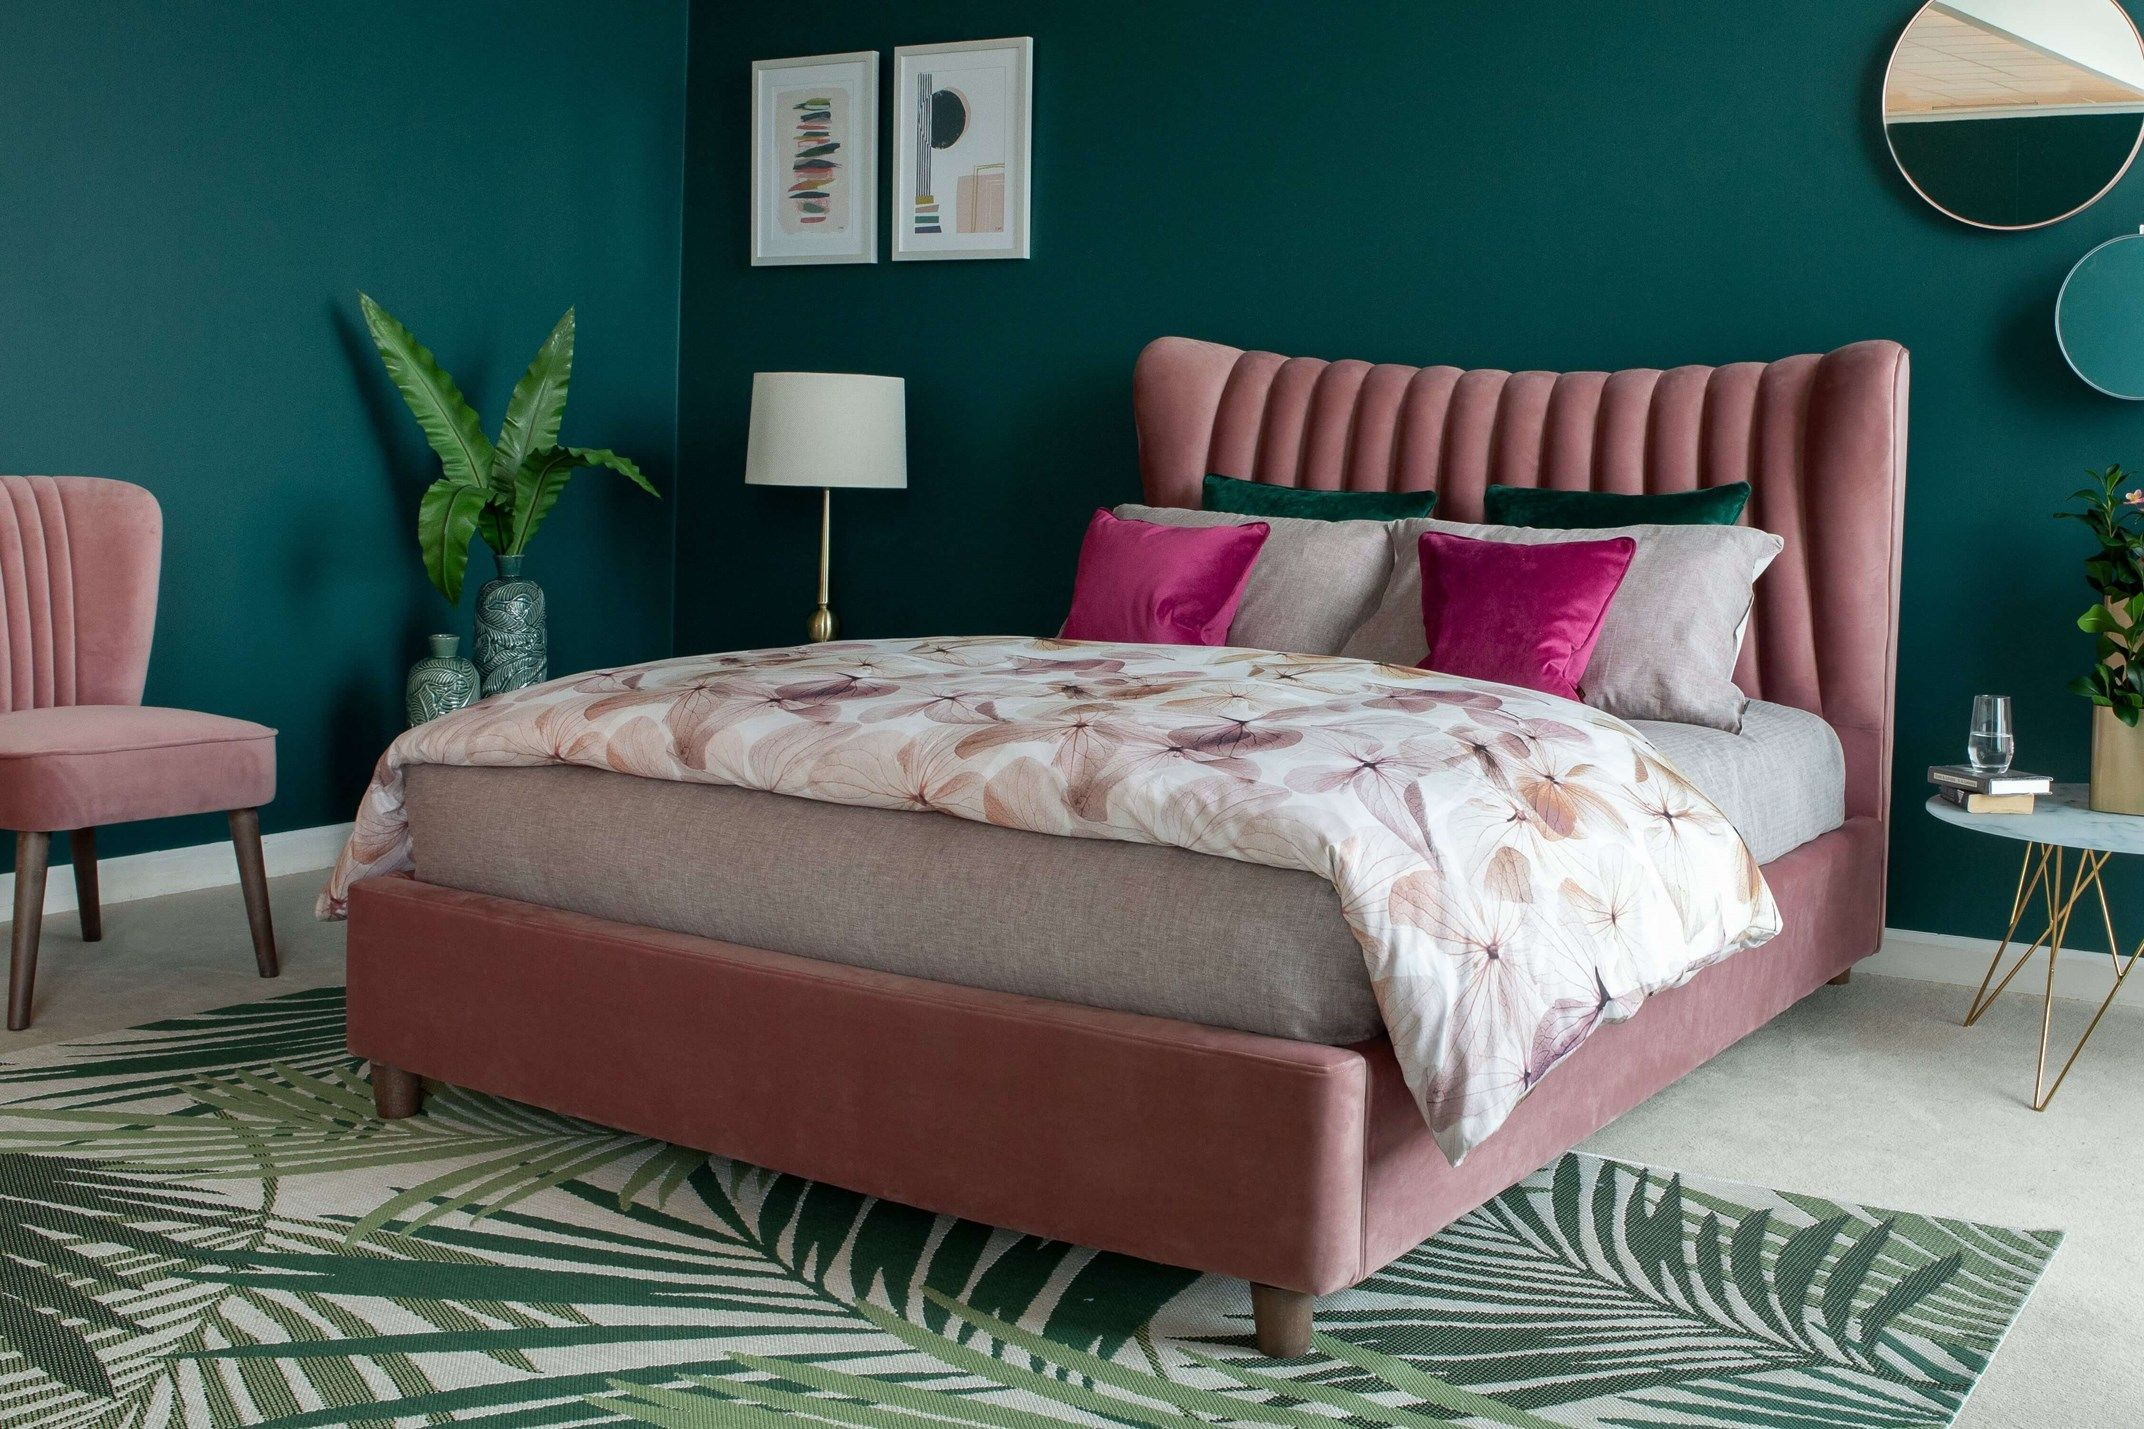 Super KingSize (6ft) Pink Fabric Bed Frame Rosey in